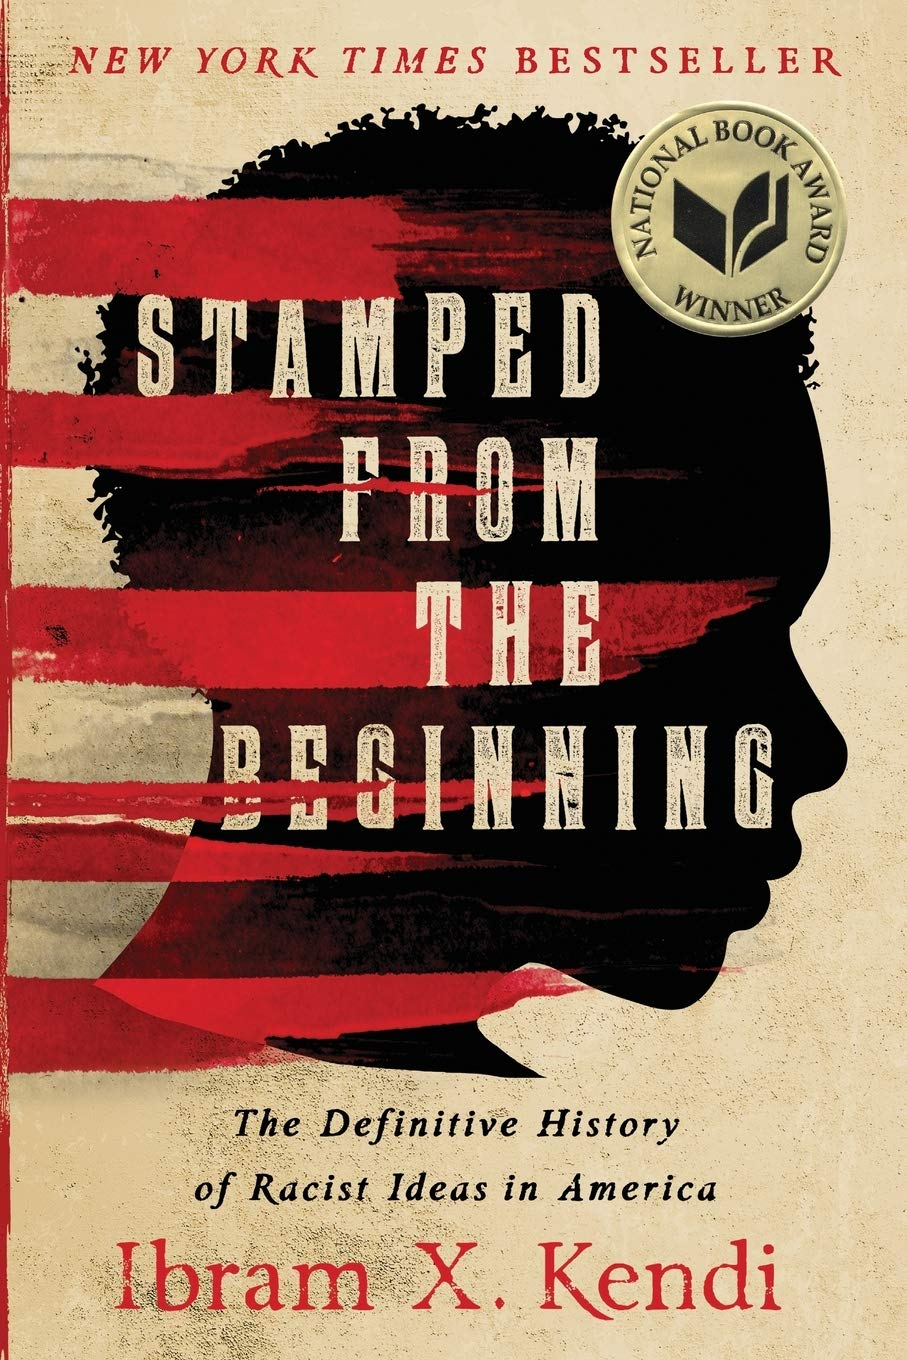 'Stamped From the Beginning' by Ibram X. Kendi